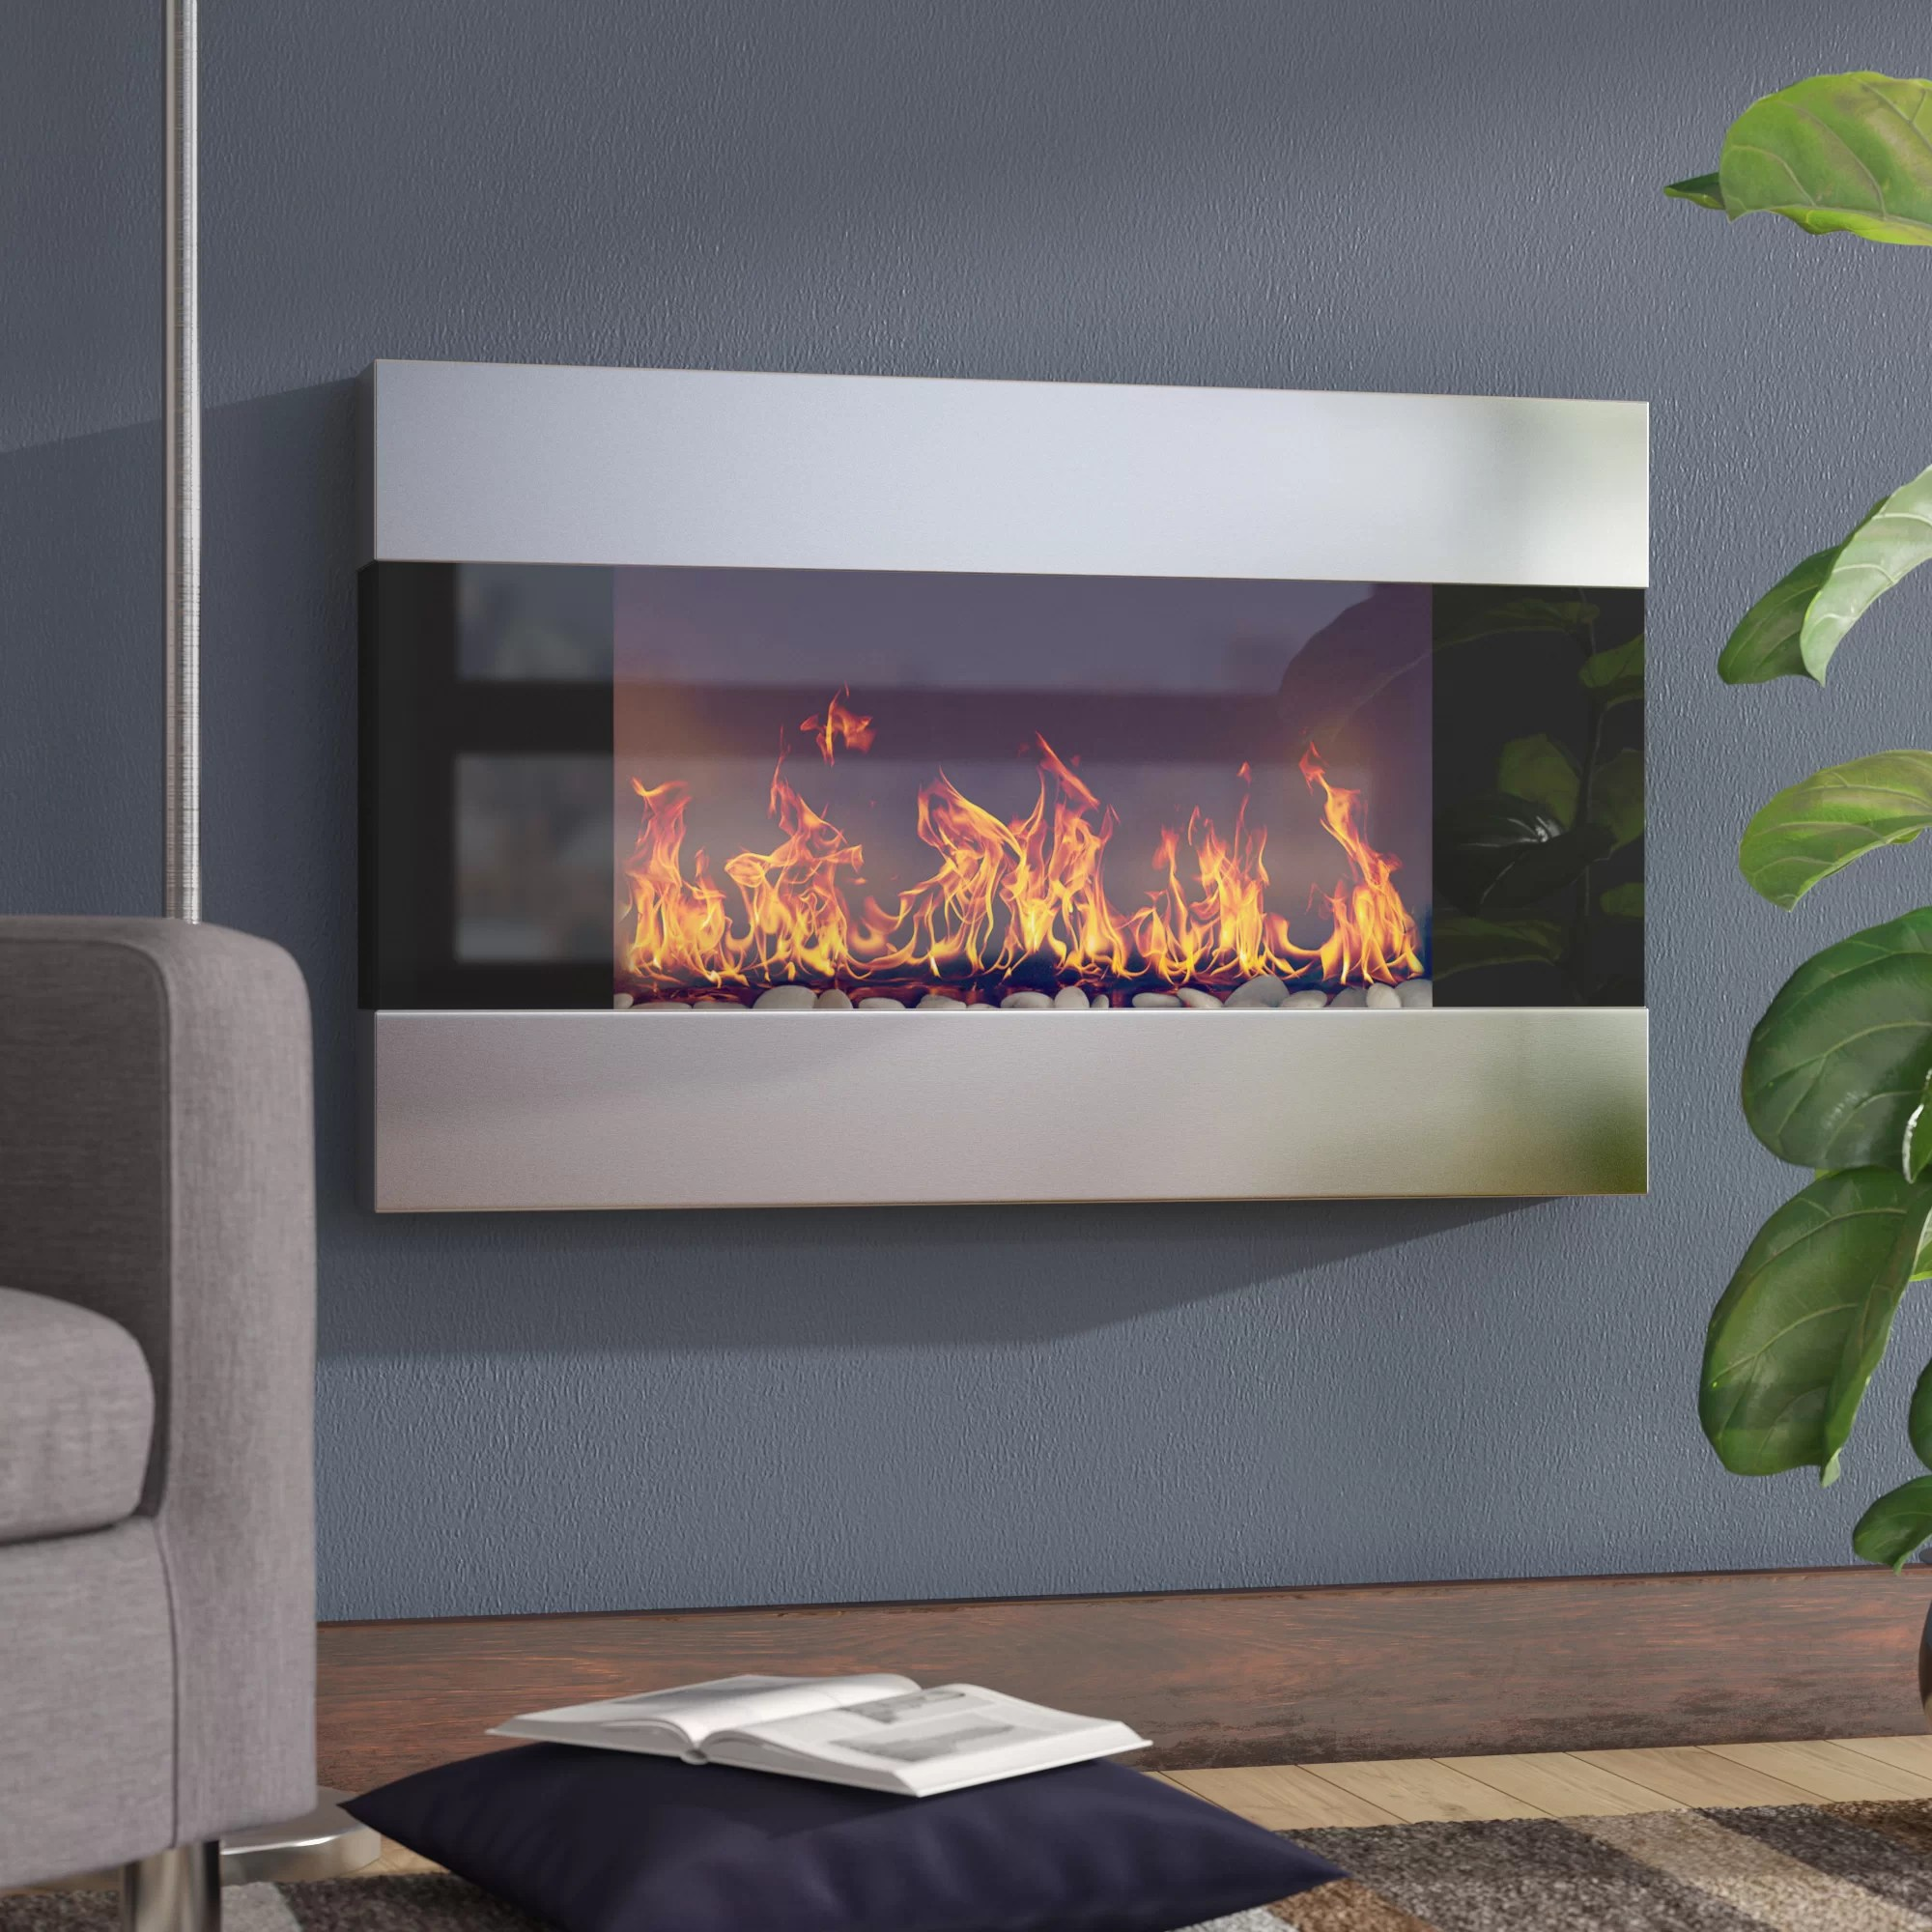 Electric Fireplace Built Into Wall Clairevale Wall Mounted Electric Fireplace